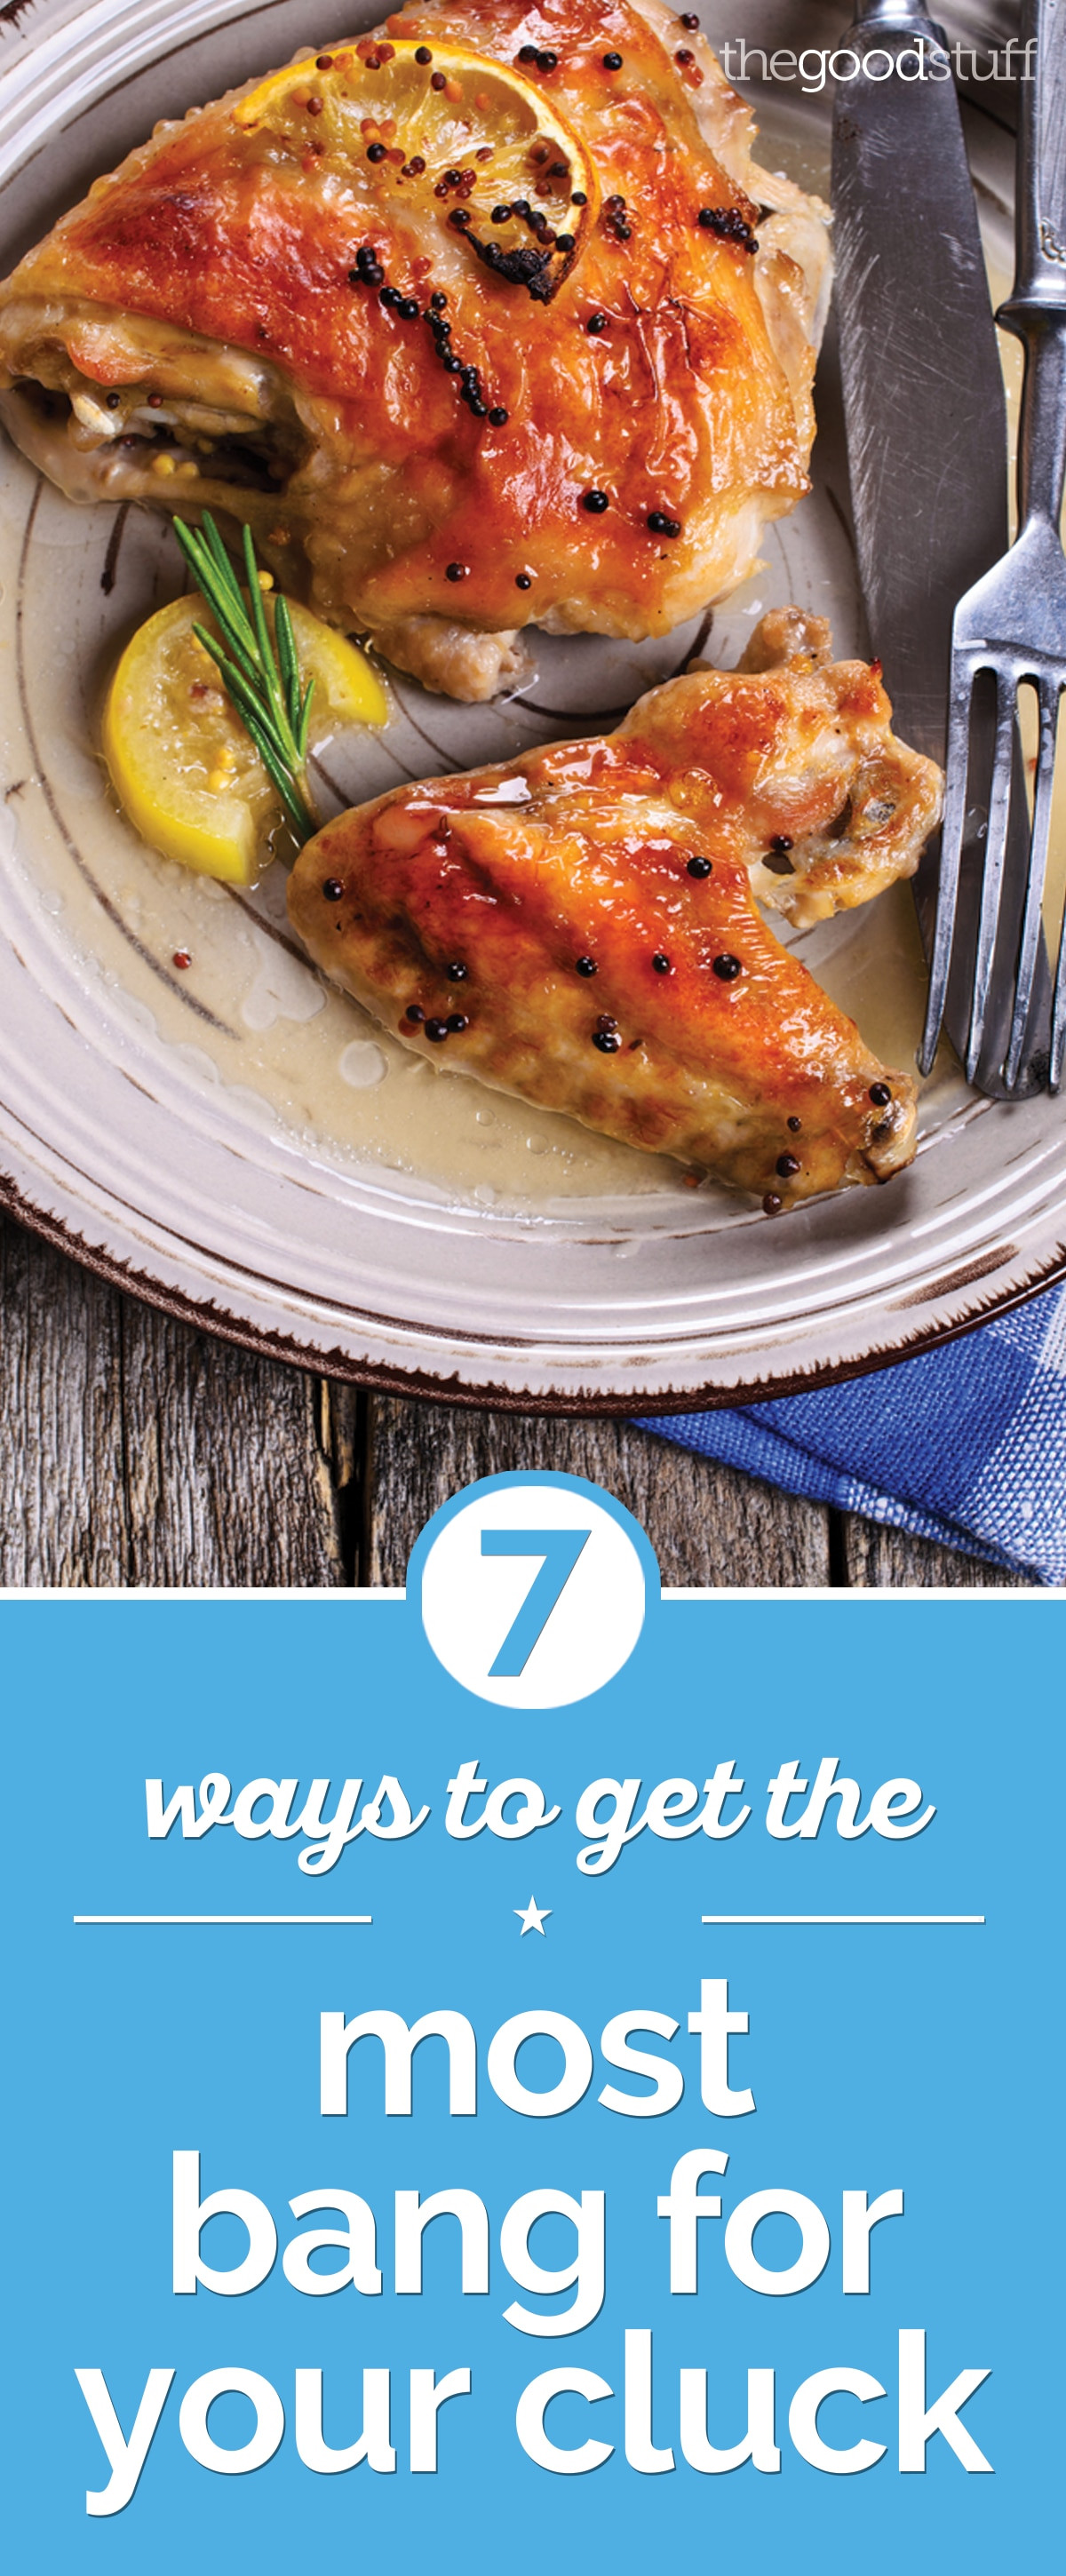 How To Cook A Whole Chicken  7 Ways to Get the Most Bang for Your Cluck thegoodstuff